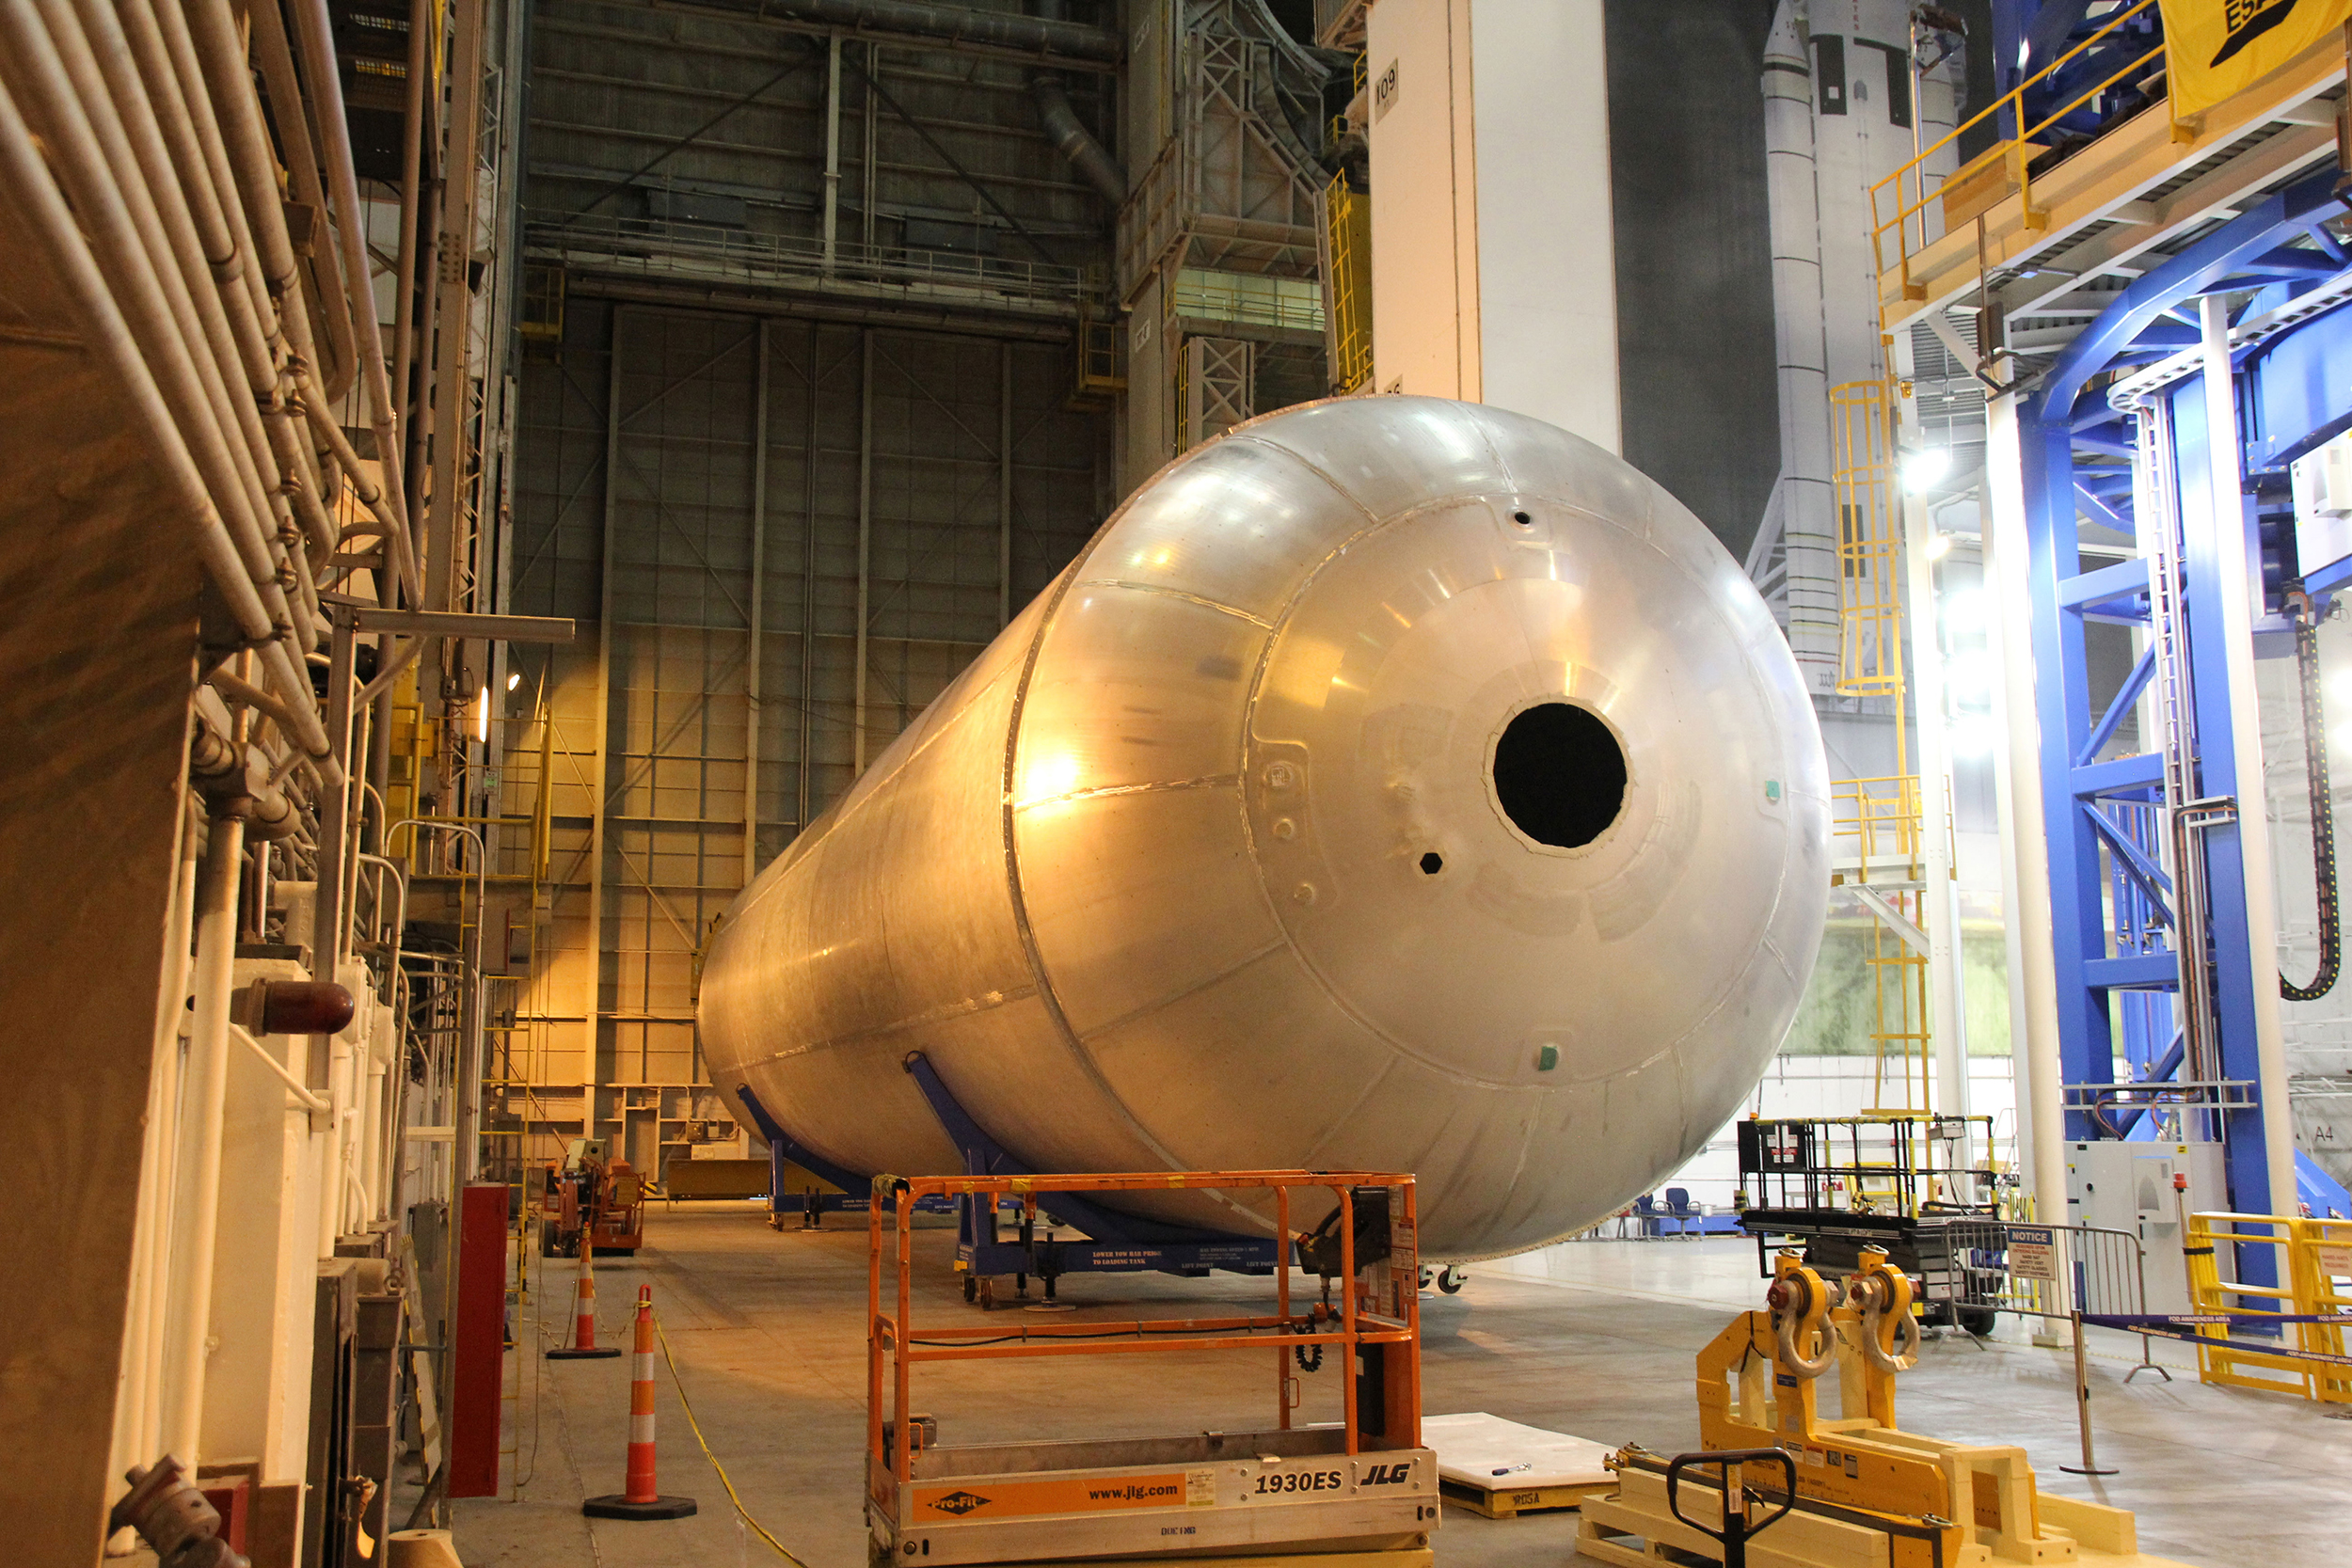 The newly assembled first liquid hydrogen tank, also called the qualification test article, for NASA's new Space Launch System rocket lies horizontally beside the Vertical Assembly Center robotic weld machine (blue) on July 22, 2016. It was lifted out of the welder after final welding was completed at NASA's Michoud Assembly Facility in New Orleans. Credit: Ken Kremer